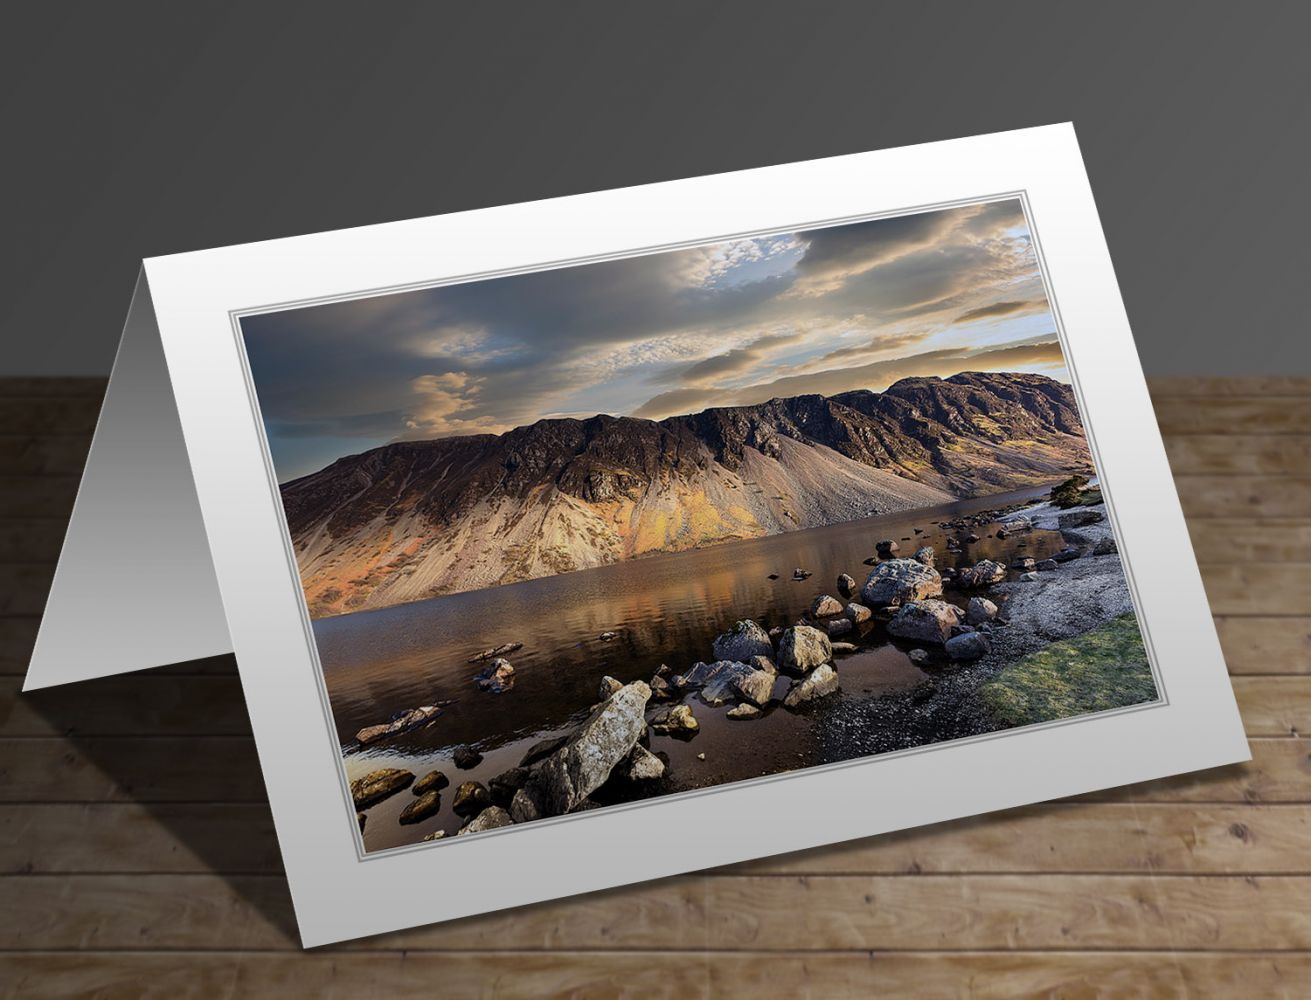 A greetings card containing the image Sunset over the Wastwater Screes by Martin Lawrence